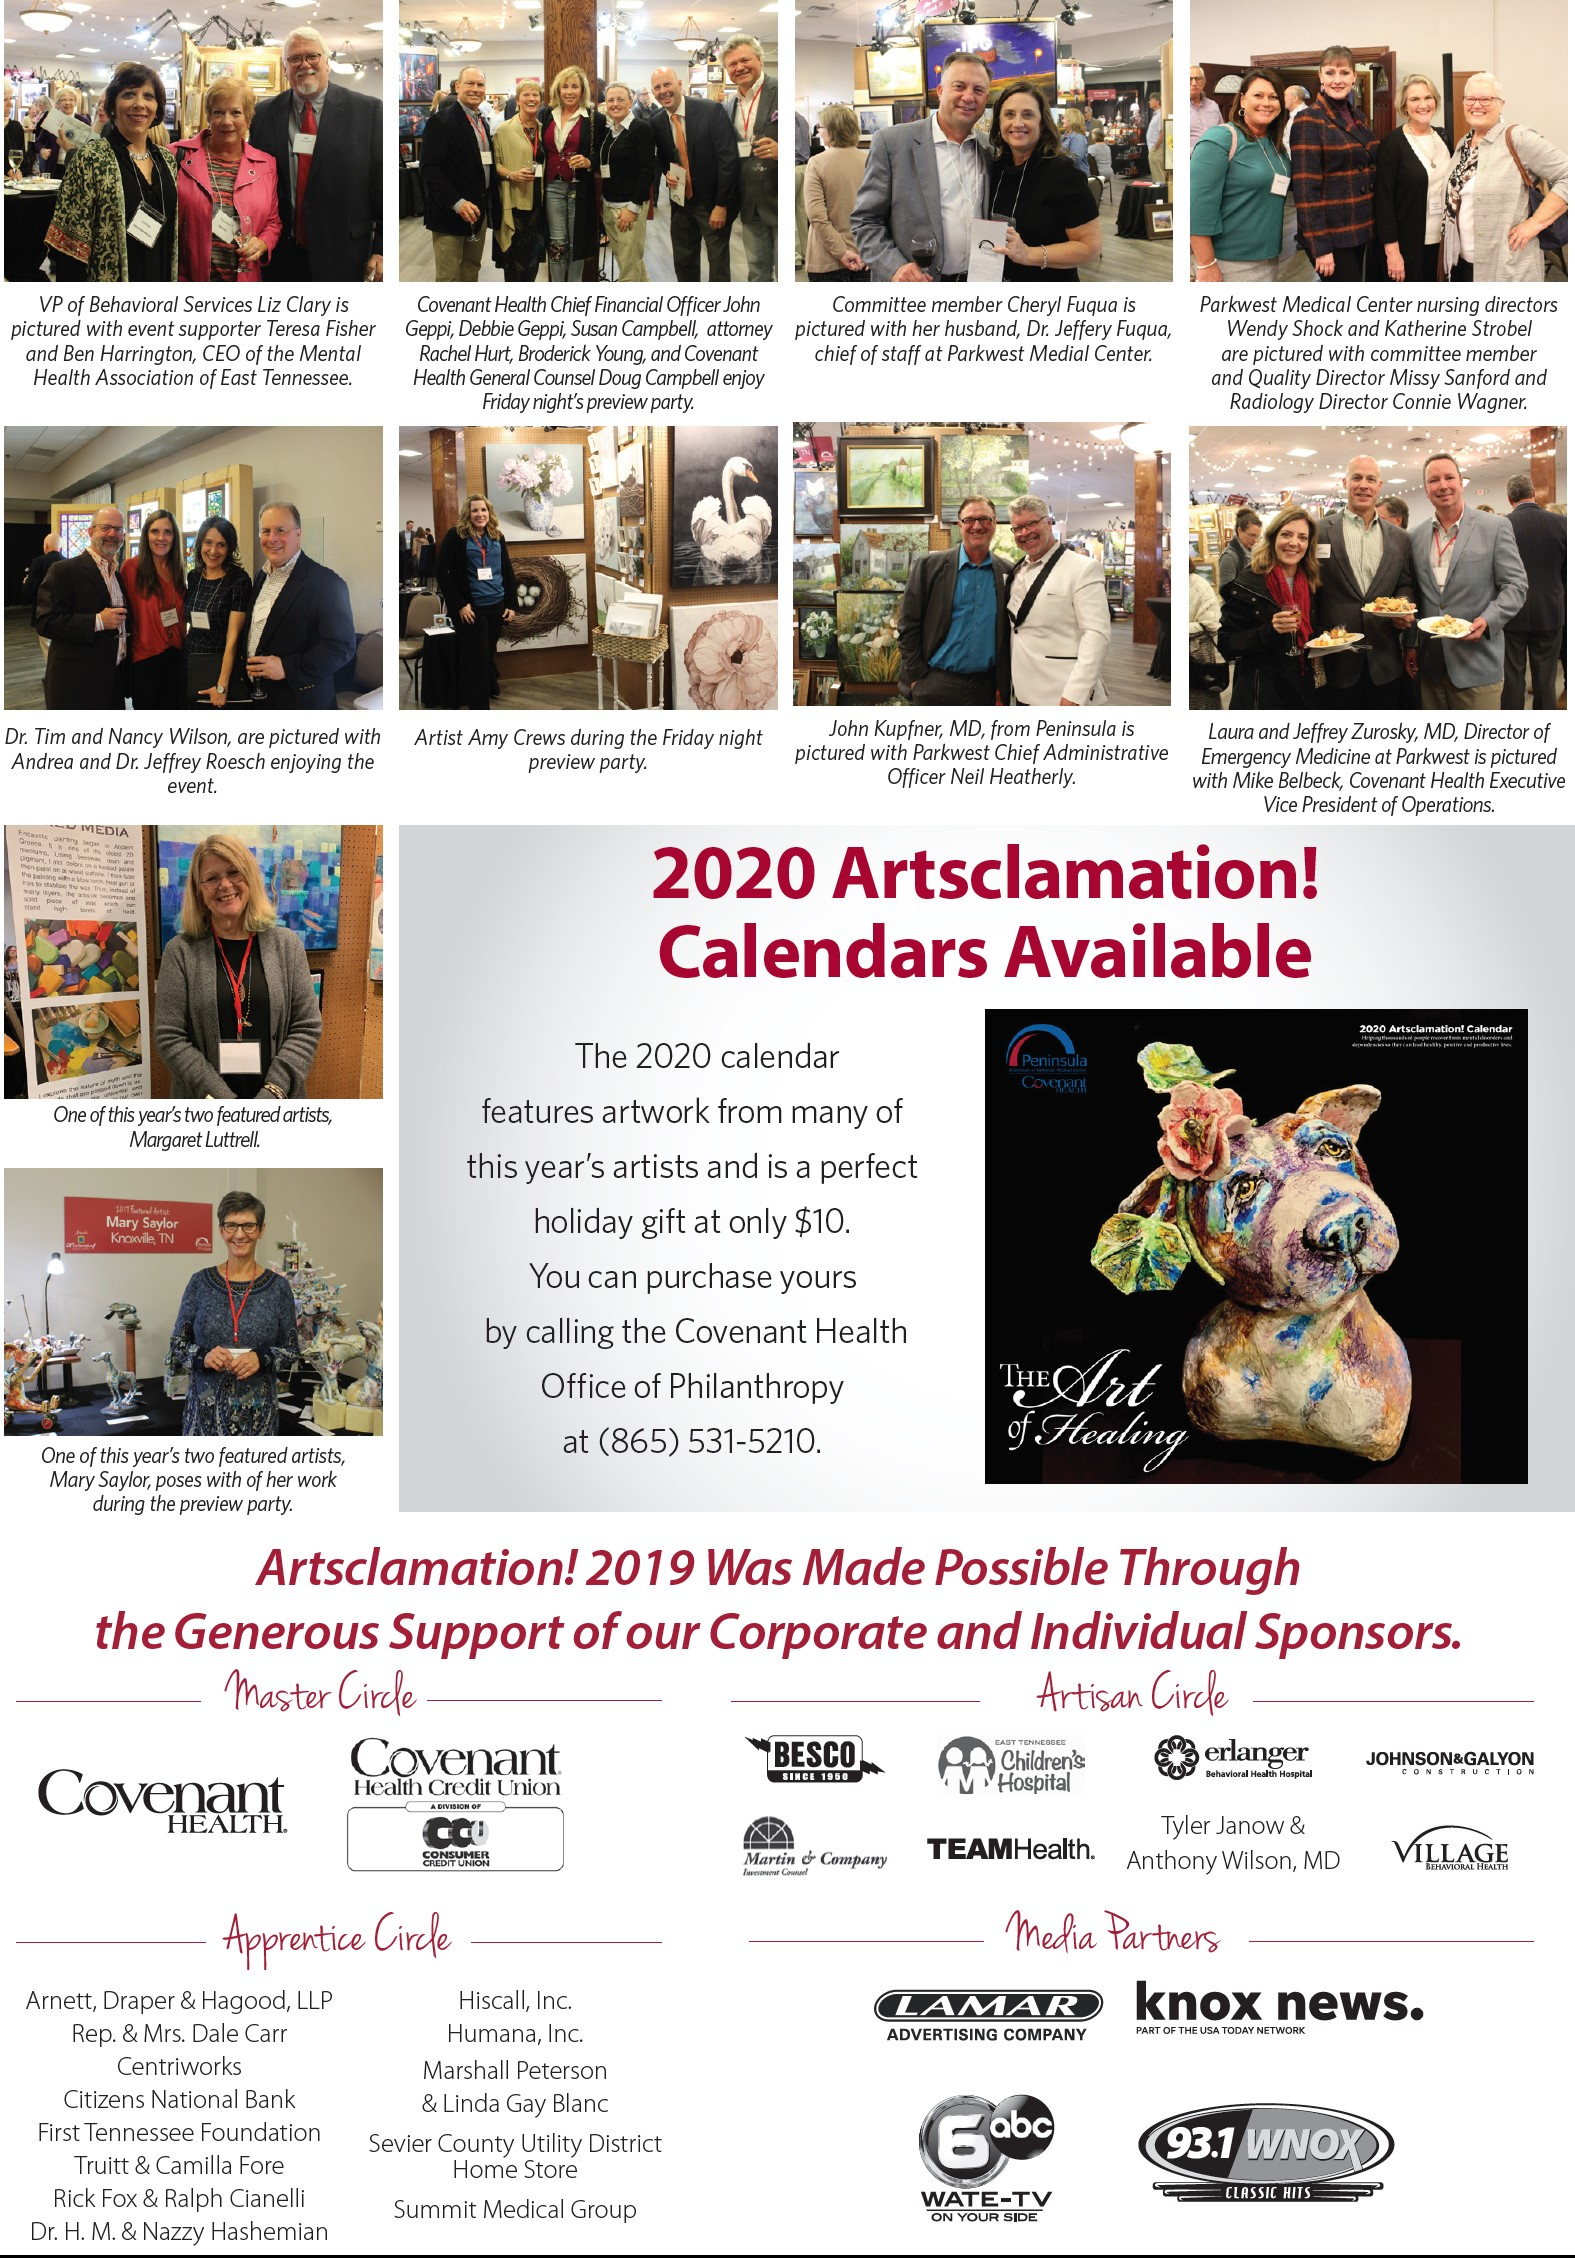 Photo collage of Arts event